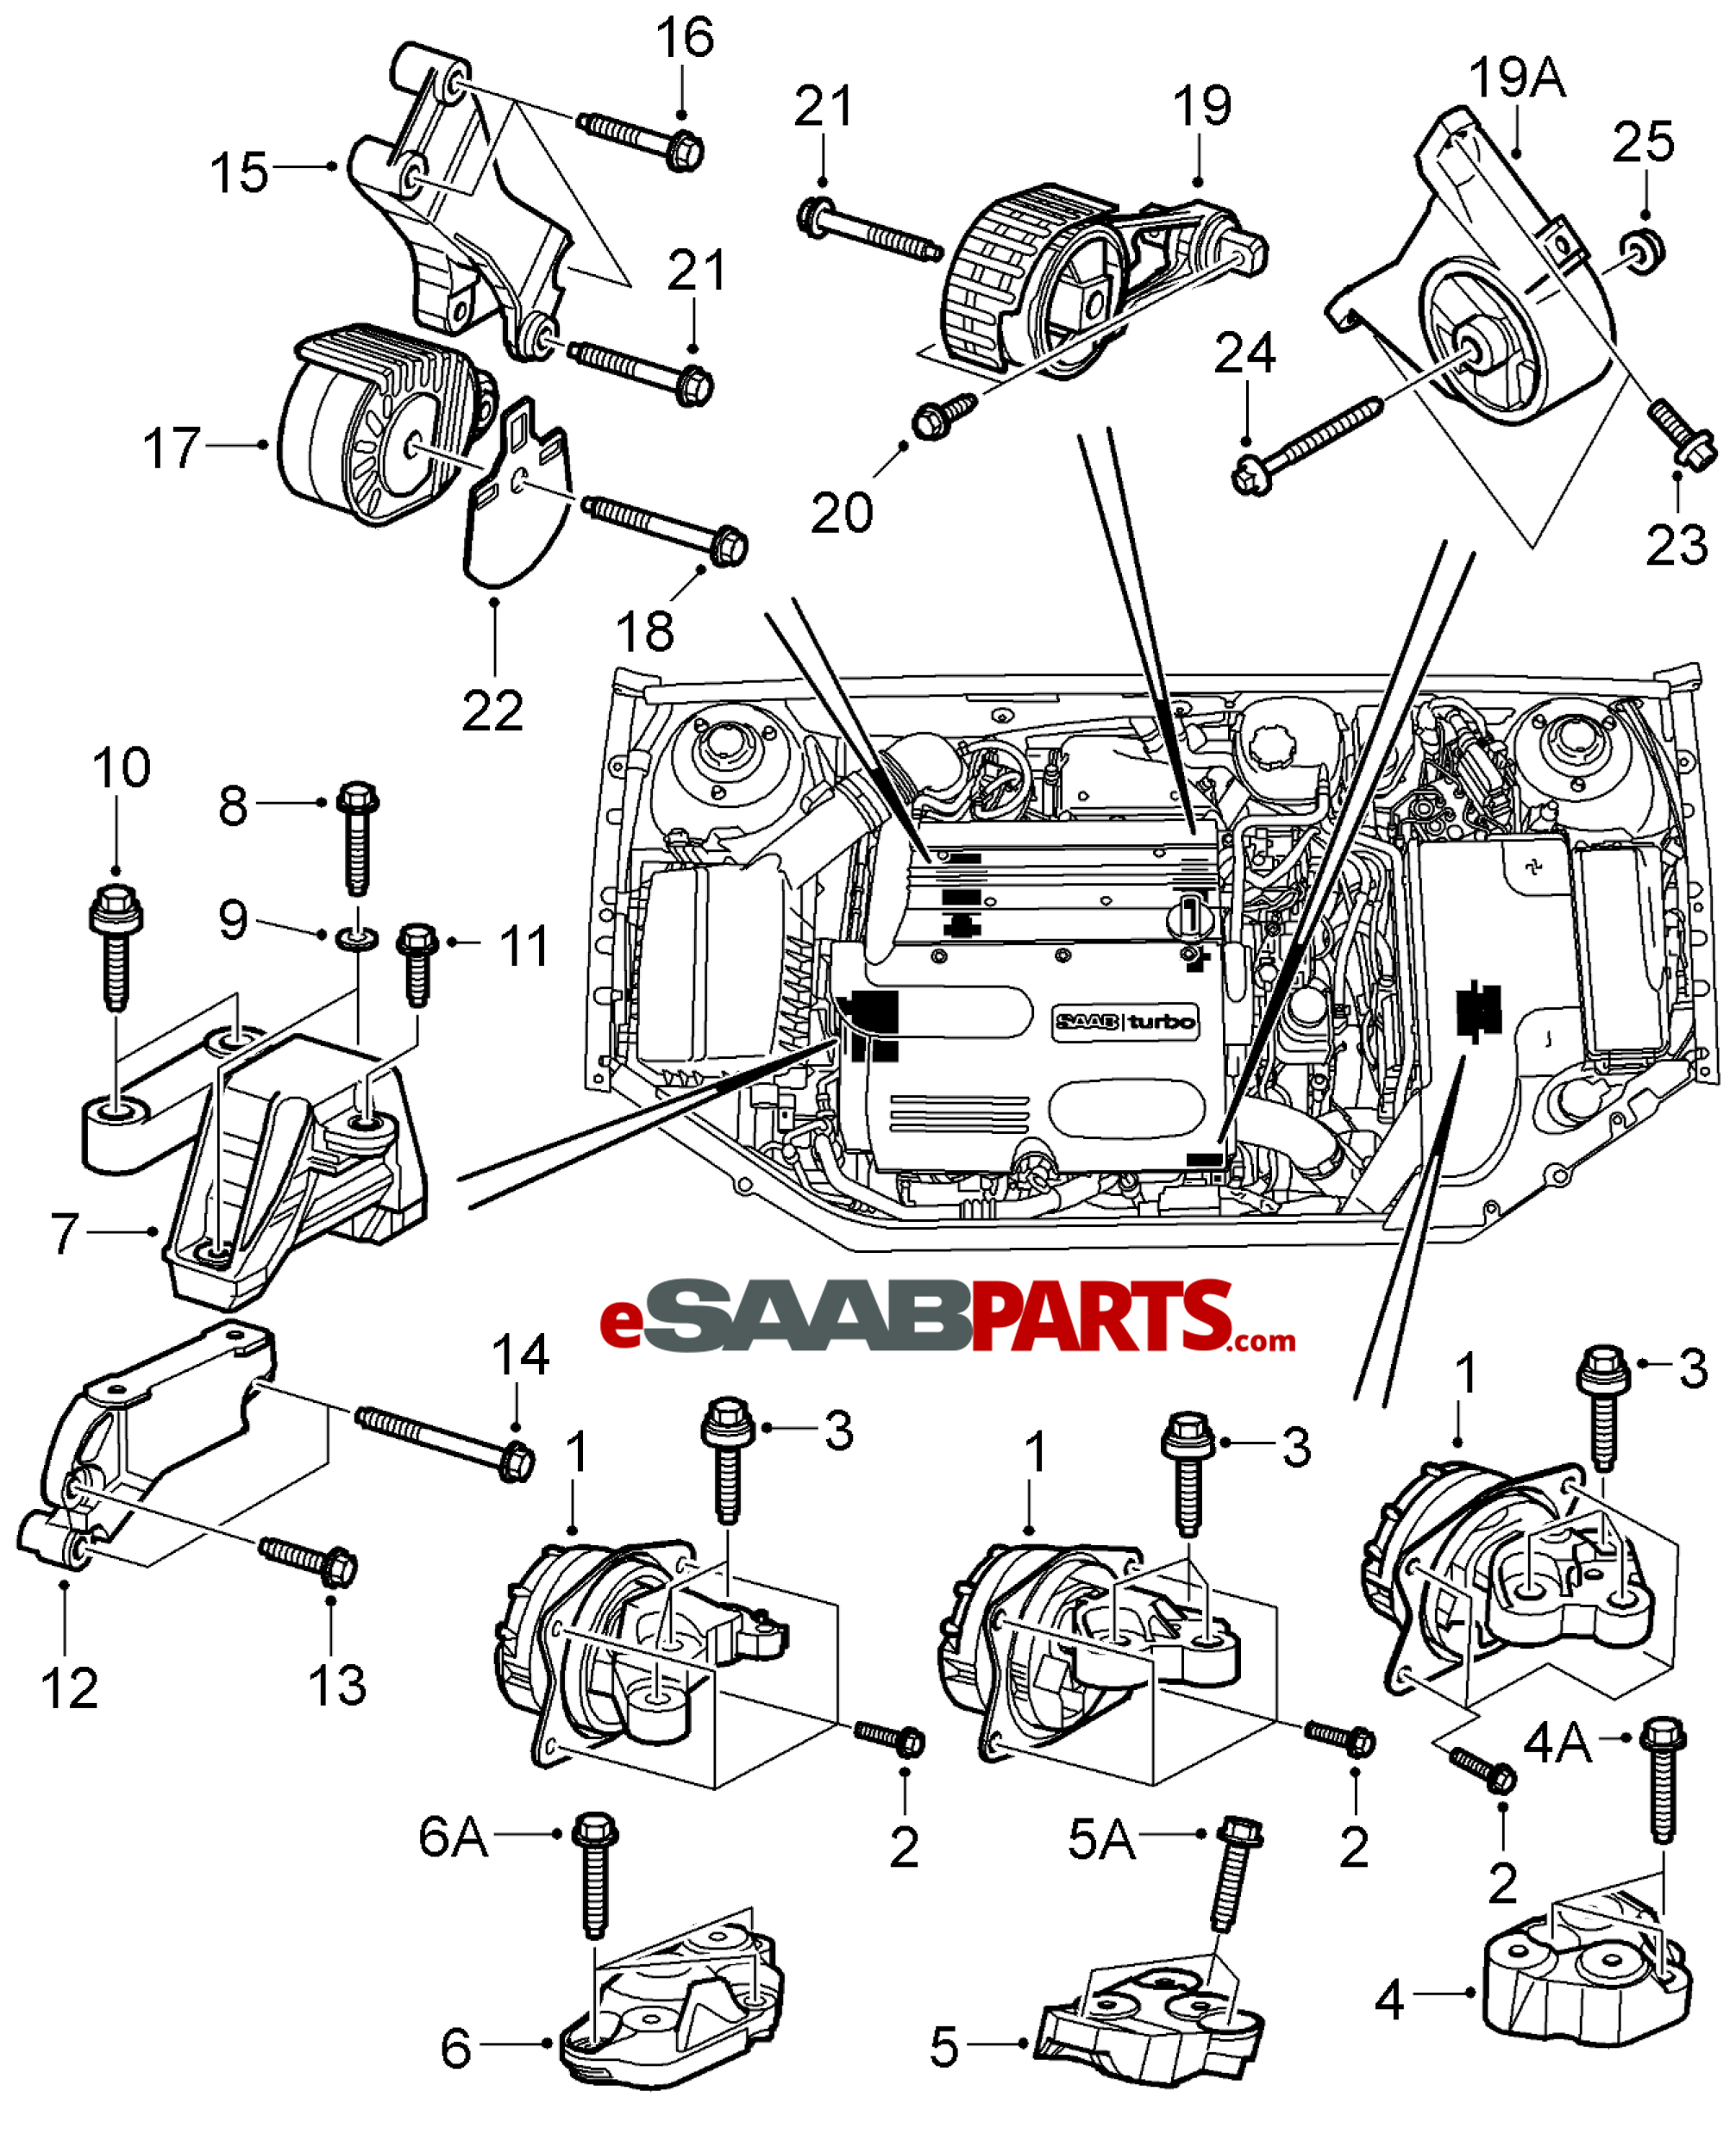 13191542 saab engine mount lh hydro bushing automatic rh esaabparts com Automatic Transmission Parts Diagram 99 Saab 9 5 Saab 900 Engine Diagram